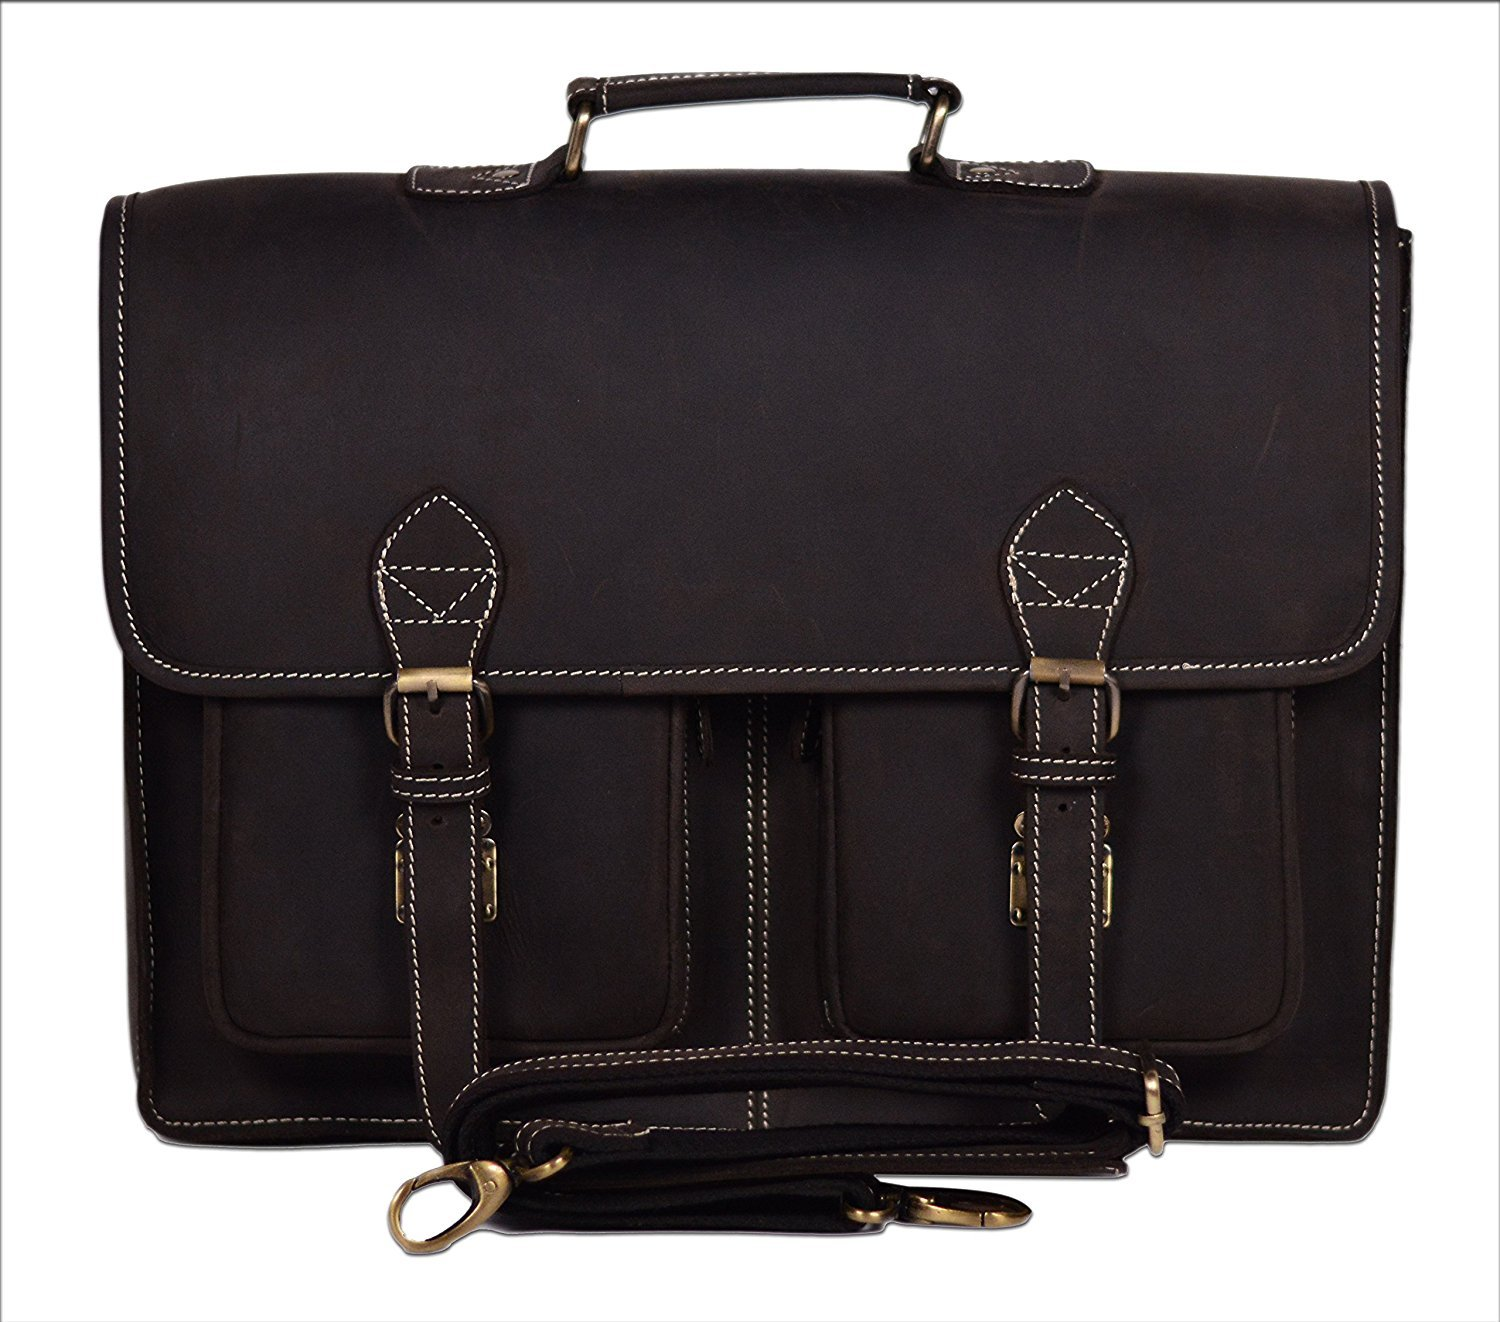 16x12 inch Sperry Retro Buffalo Hunter Leather Laptop Messenger Bag Office Briefcase College Bag